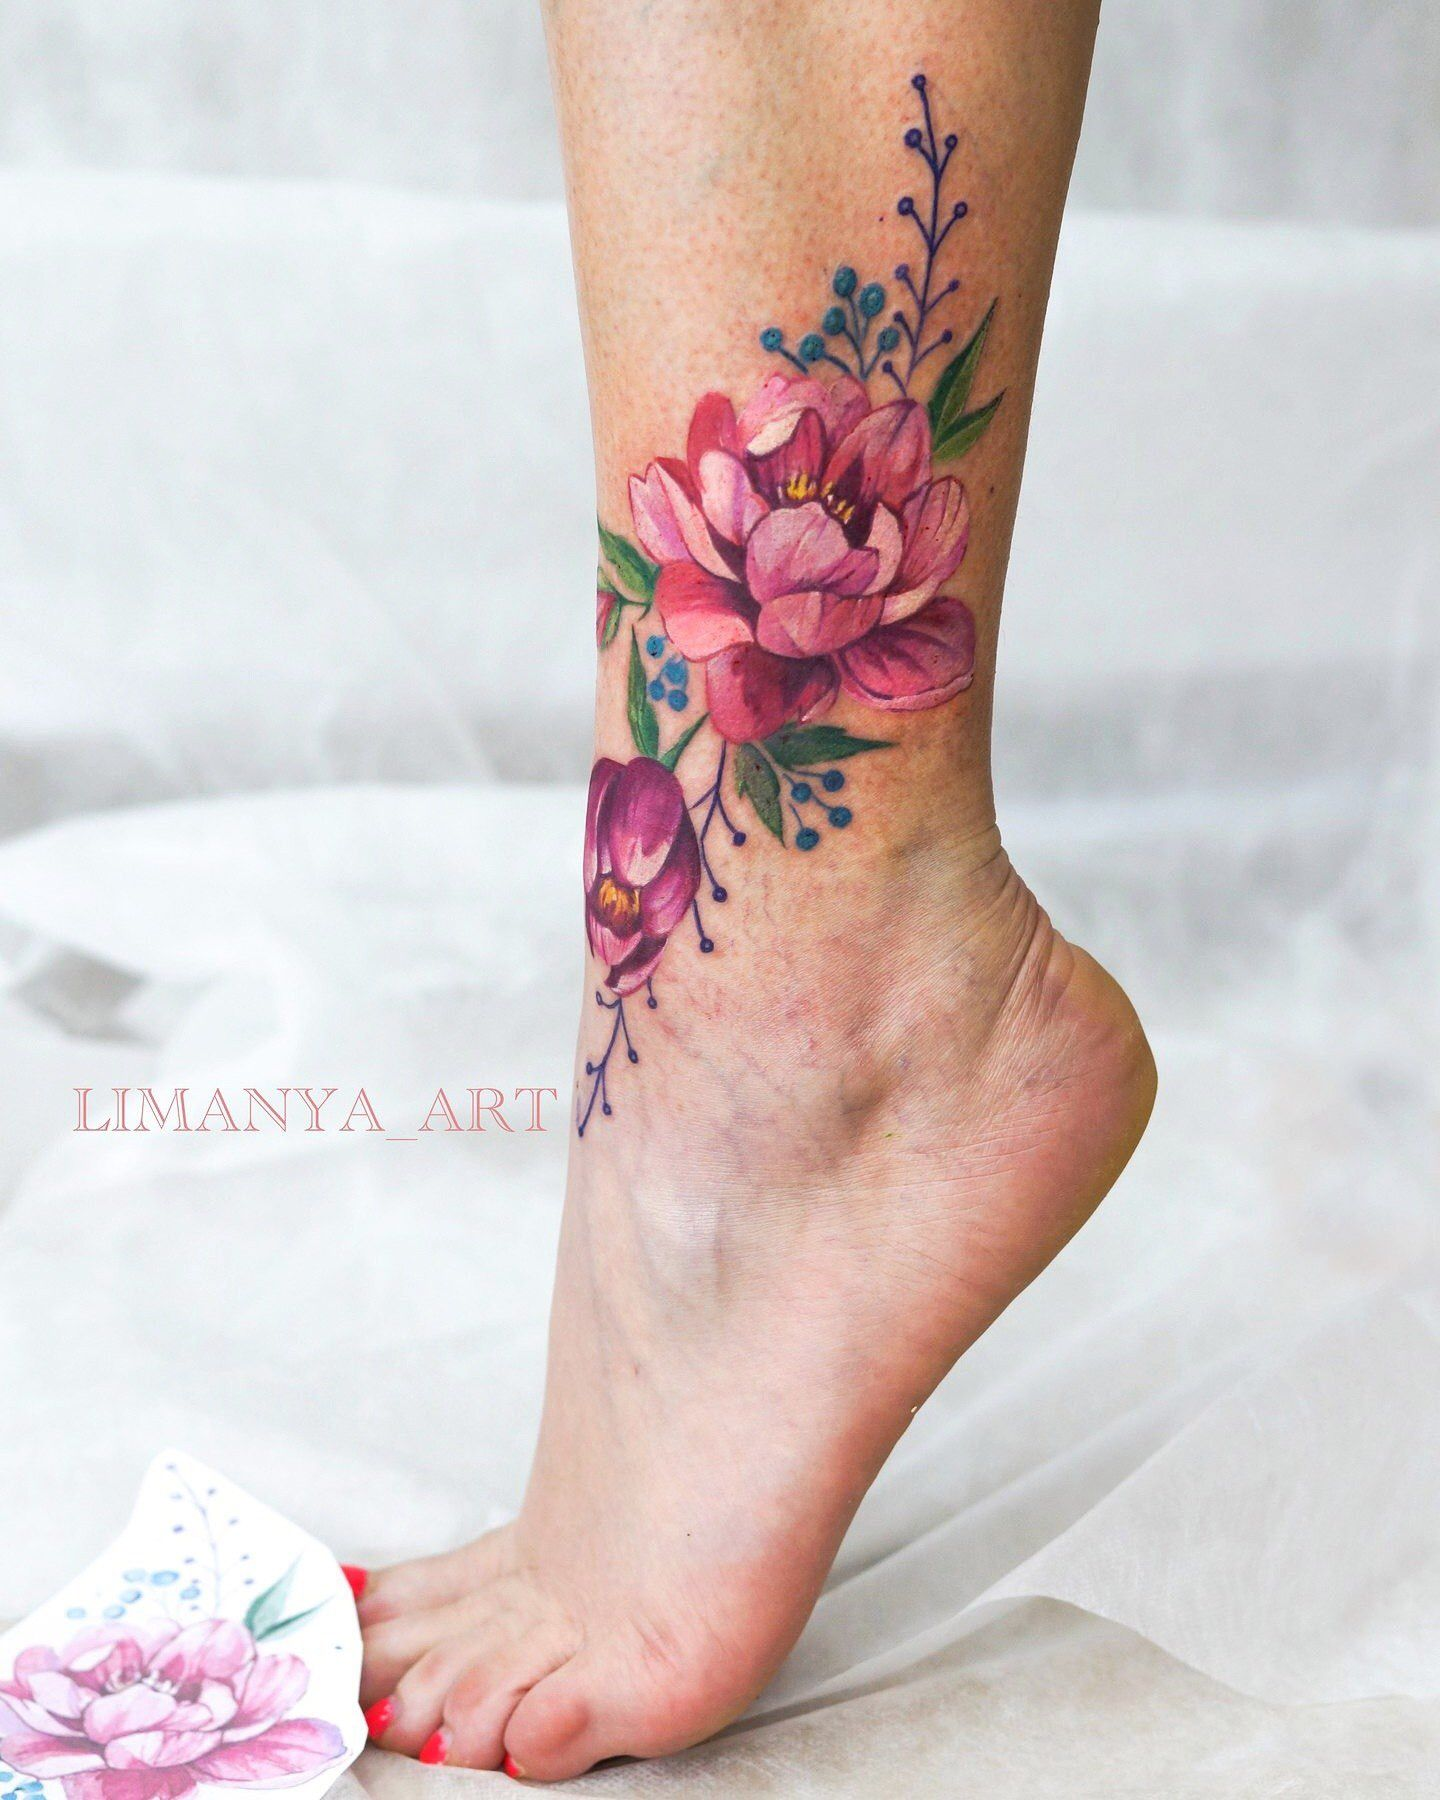 Good ankle tattoo ideas pin by tracey stanners on tatts  pinterest  tattoo tatoo and tatting